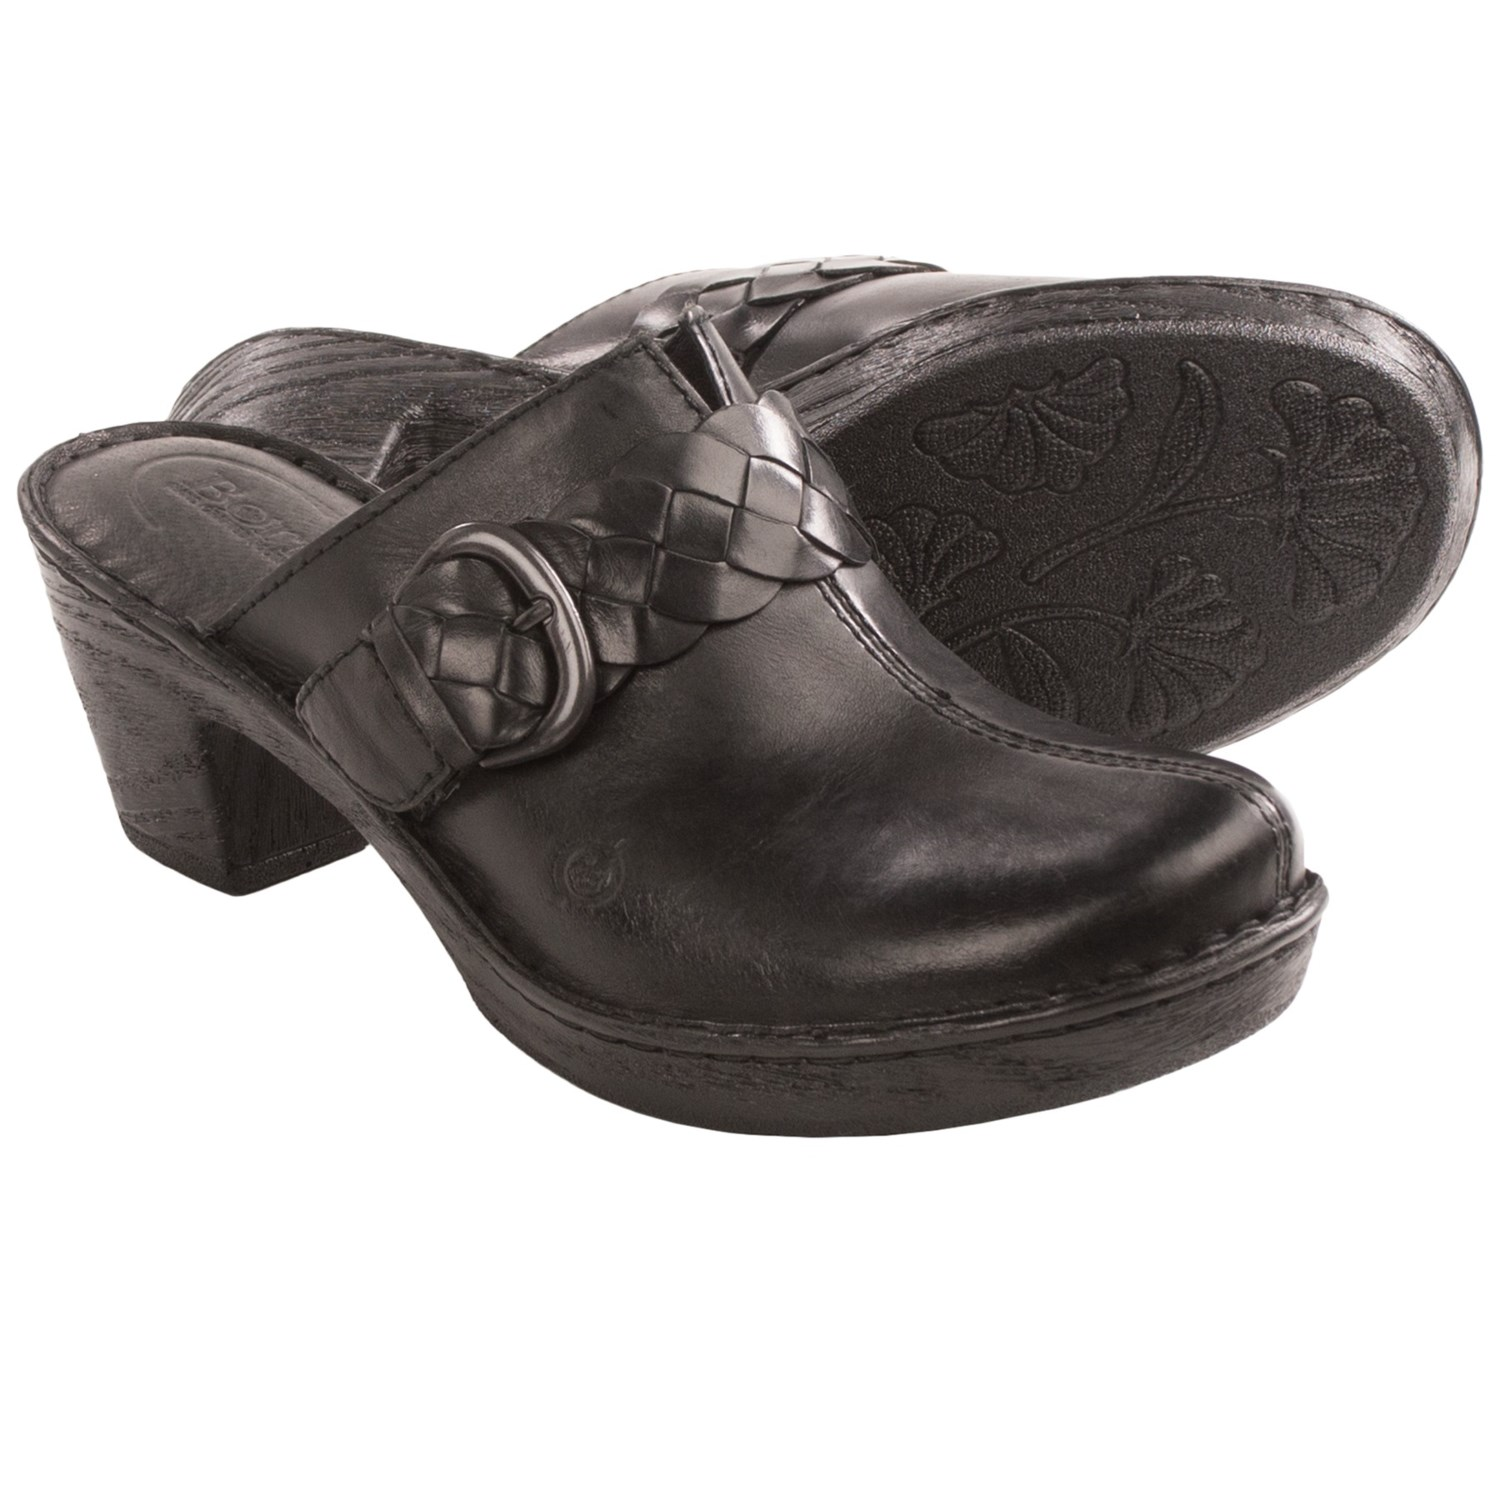 Born Emme Leather Clogs (For Women) 8614Y - Save 44%